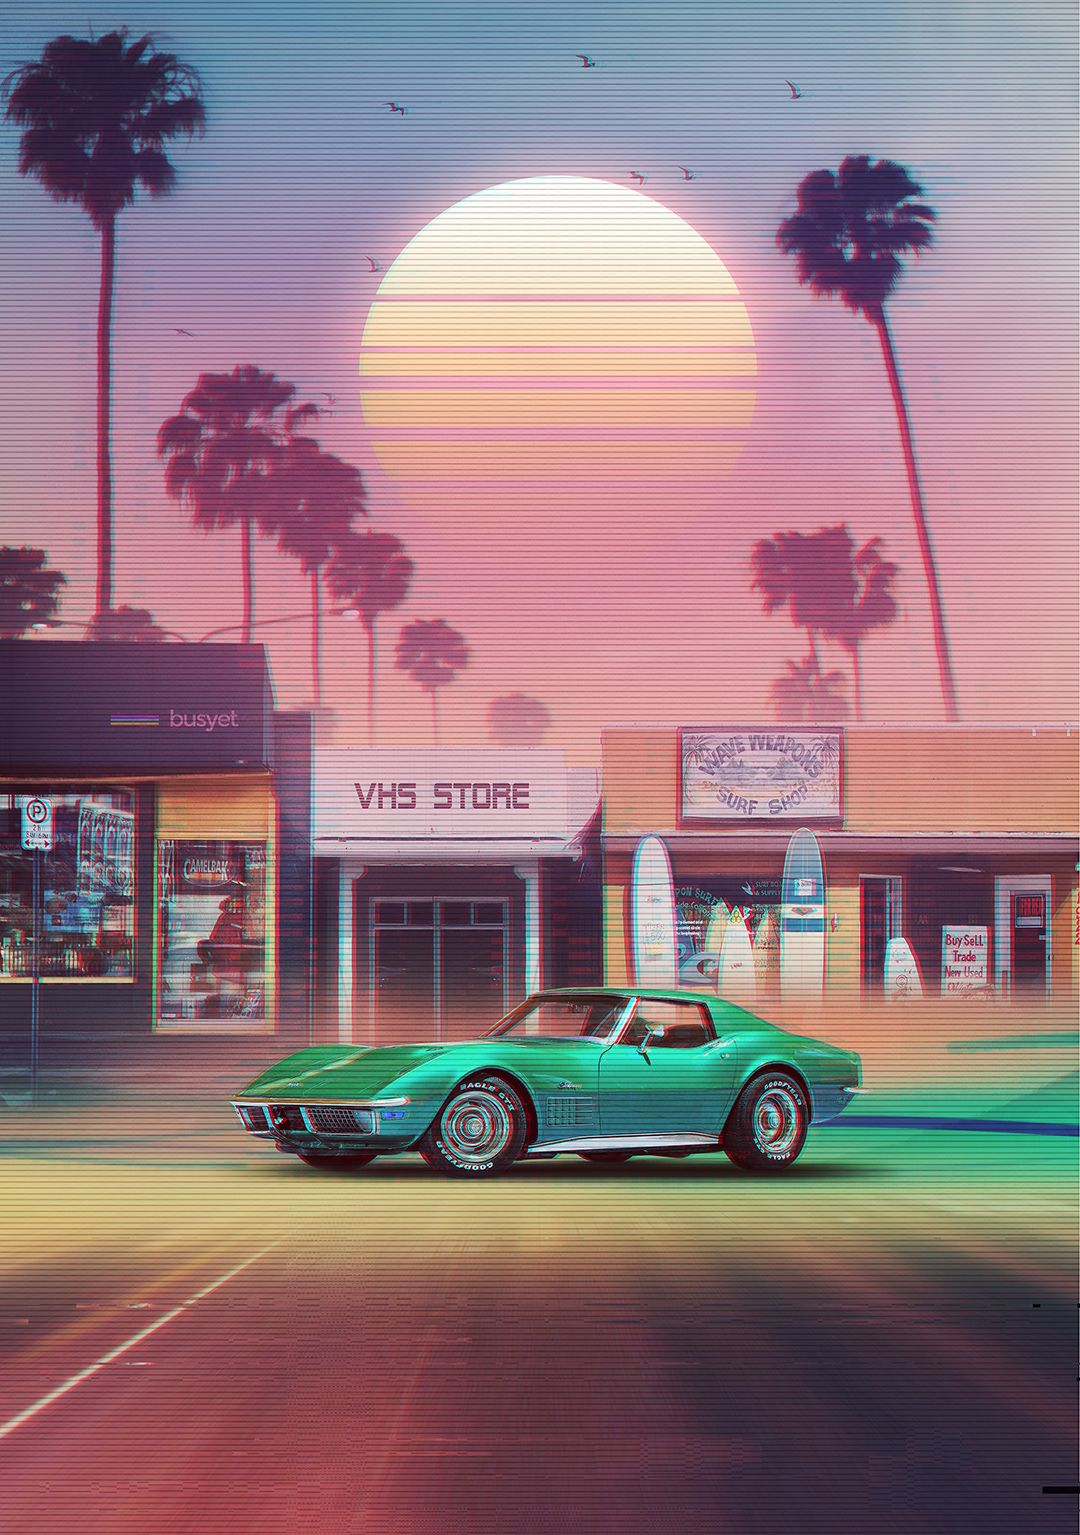 Synthwave Sunset Drive Poster By Dennybusyet Vintage Retro